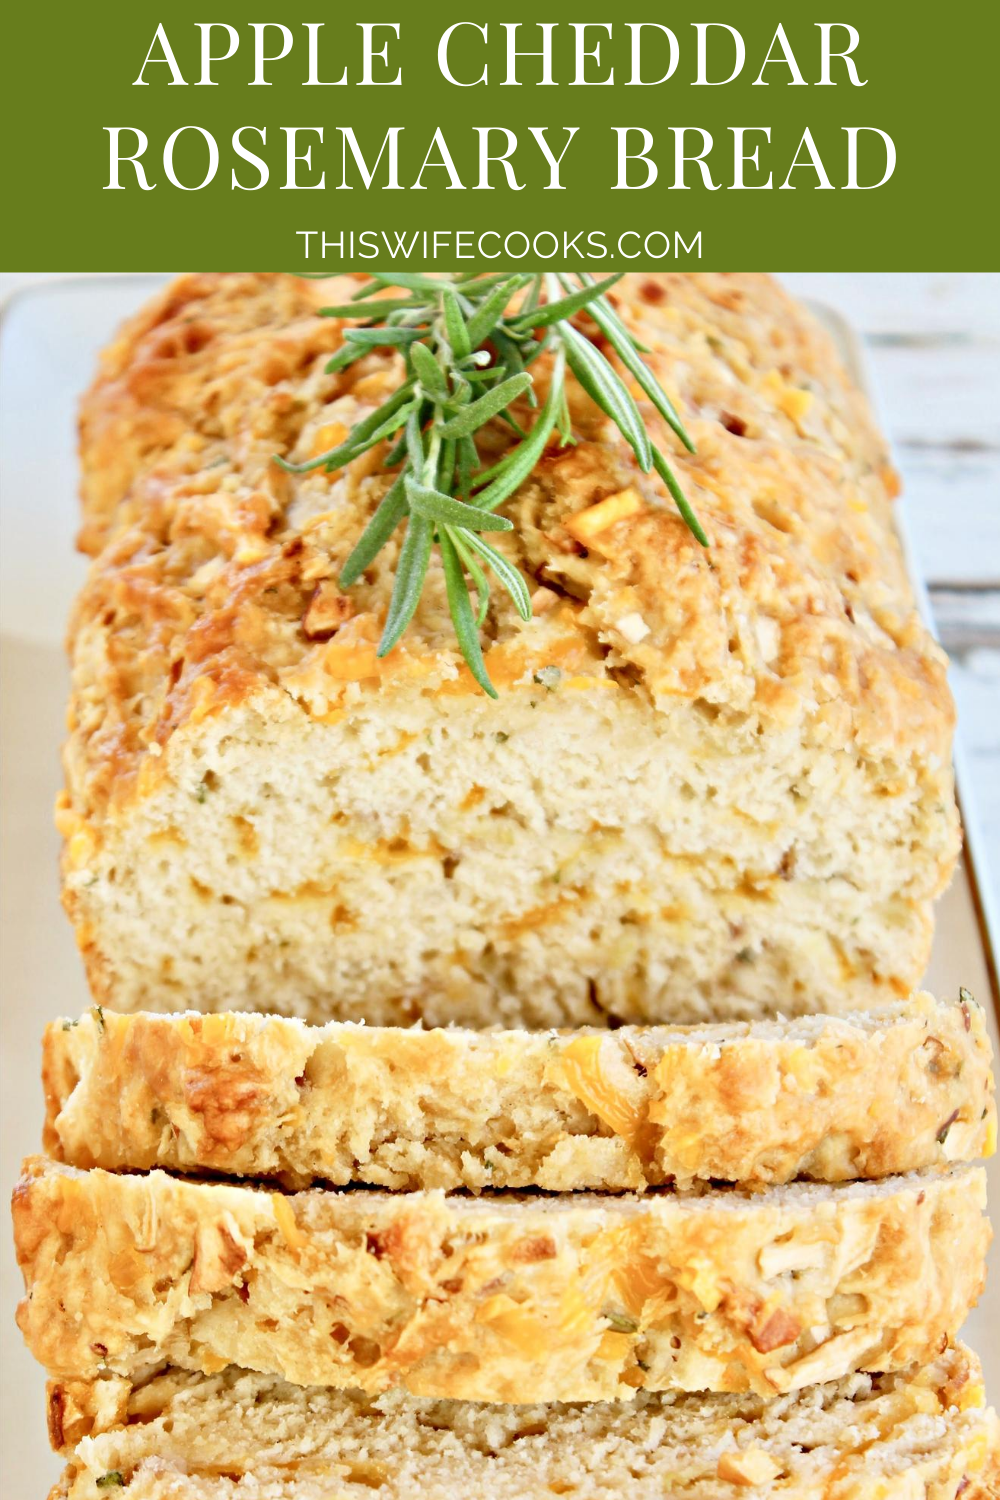 Apple Cheddar Rosemary Bread ~Sweet and savory beer bread with the classic flavor combination of apples, cheddar cheese, and fresh rosemary. Guaranteed to make your house smell like fall! via @thiswifecooks